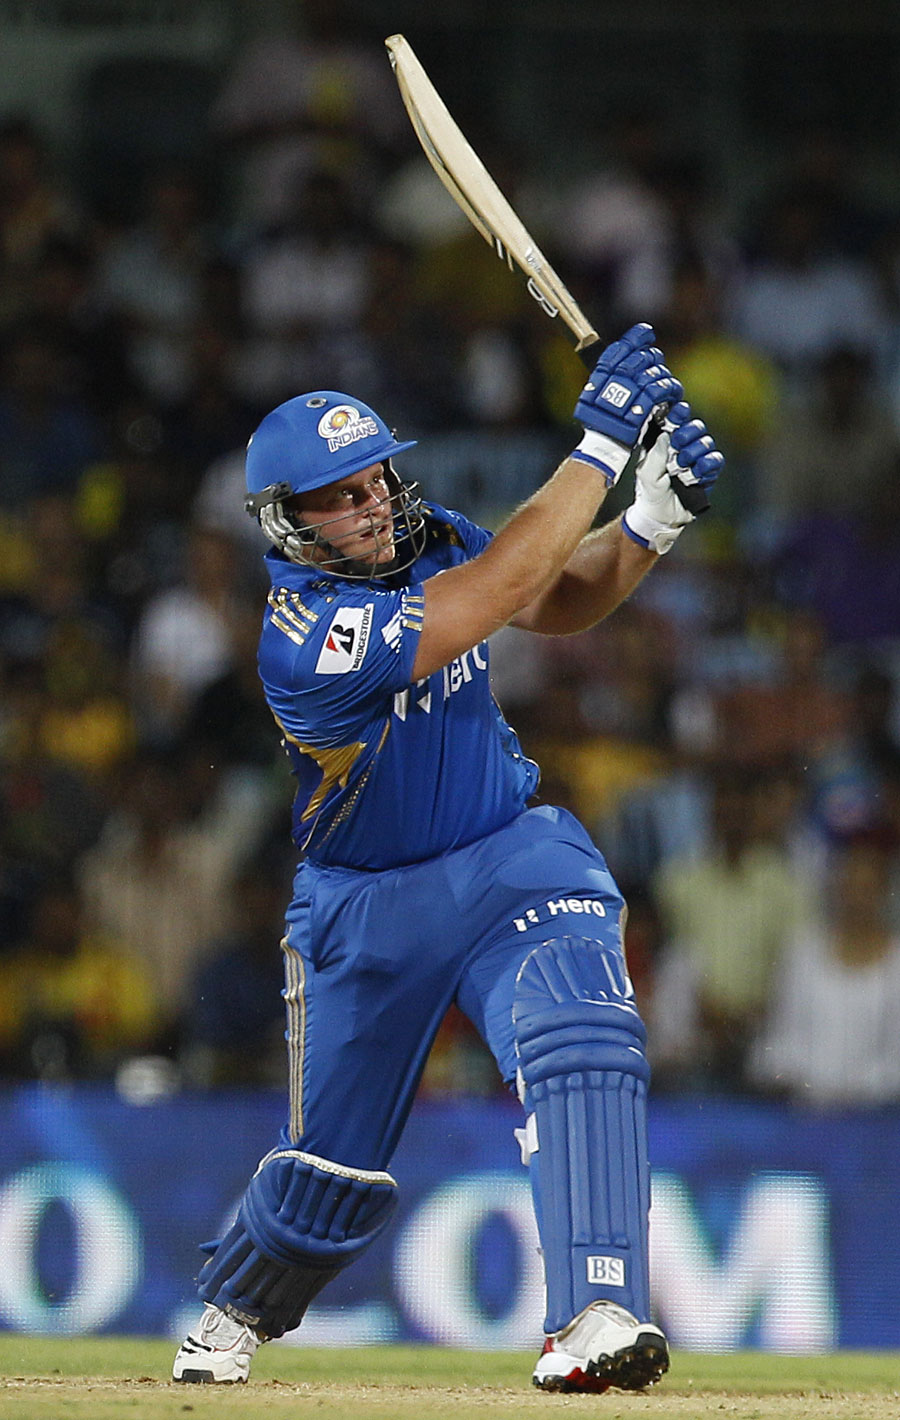 ipl matches Indian premier league, 2018 schedule, points table, final teams list, news,  venue details, series & player stats, expert analysis, videos and much more.